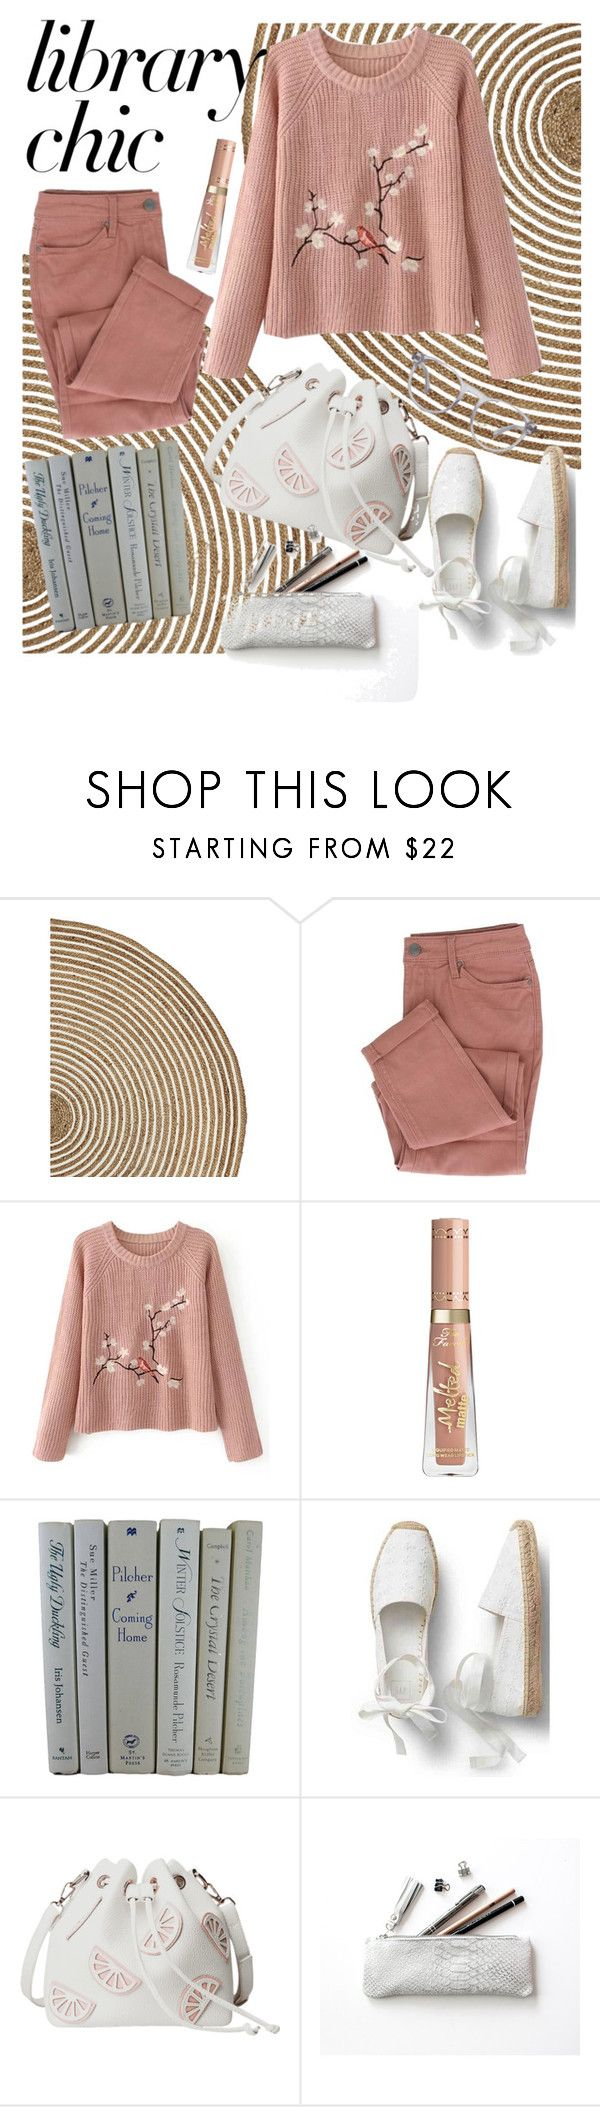 """""""Untitled #245"""" by anita-nurul-fauziah-sunarya ❤ liked on Polyvore featuring Serena & Lily and HOOK LDN"""